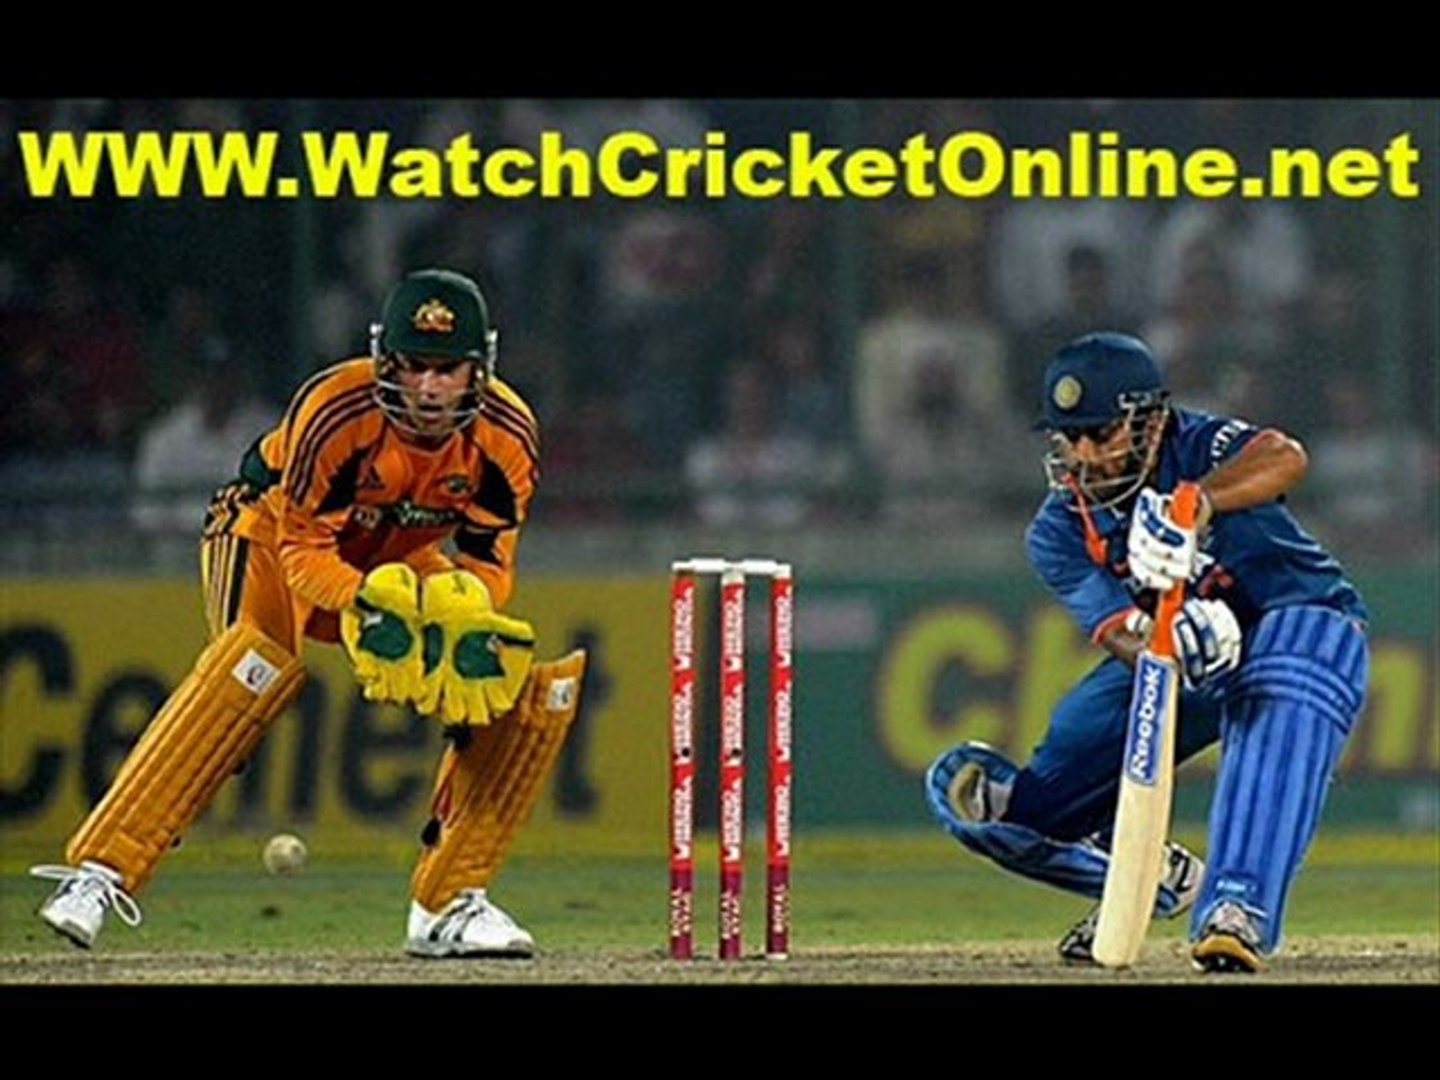 watch India vs South Africa one day matches 2010 live stream